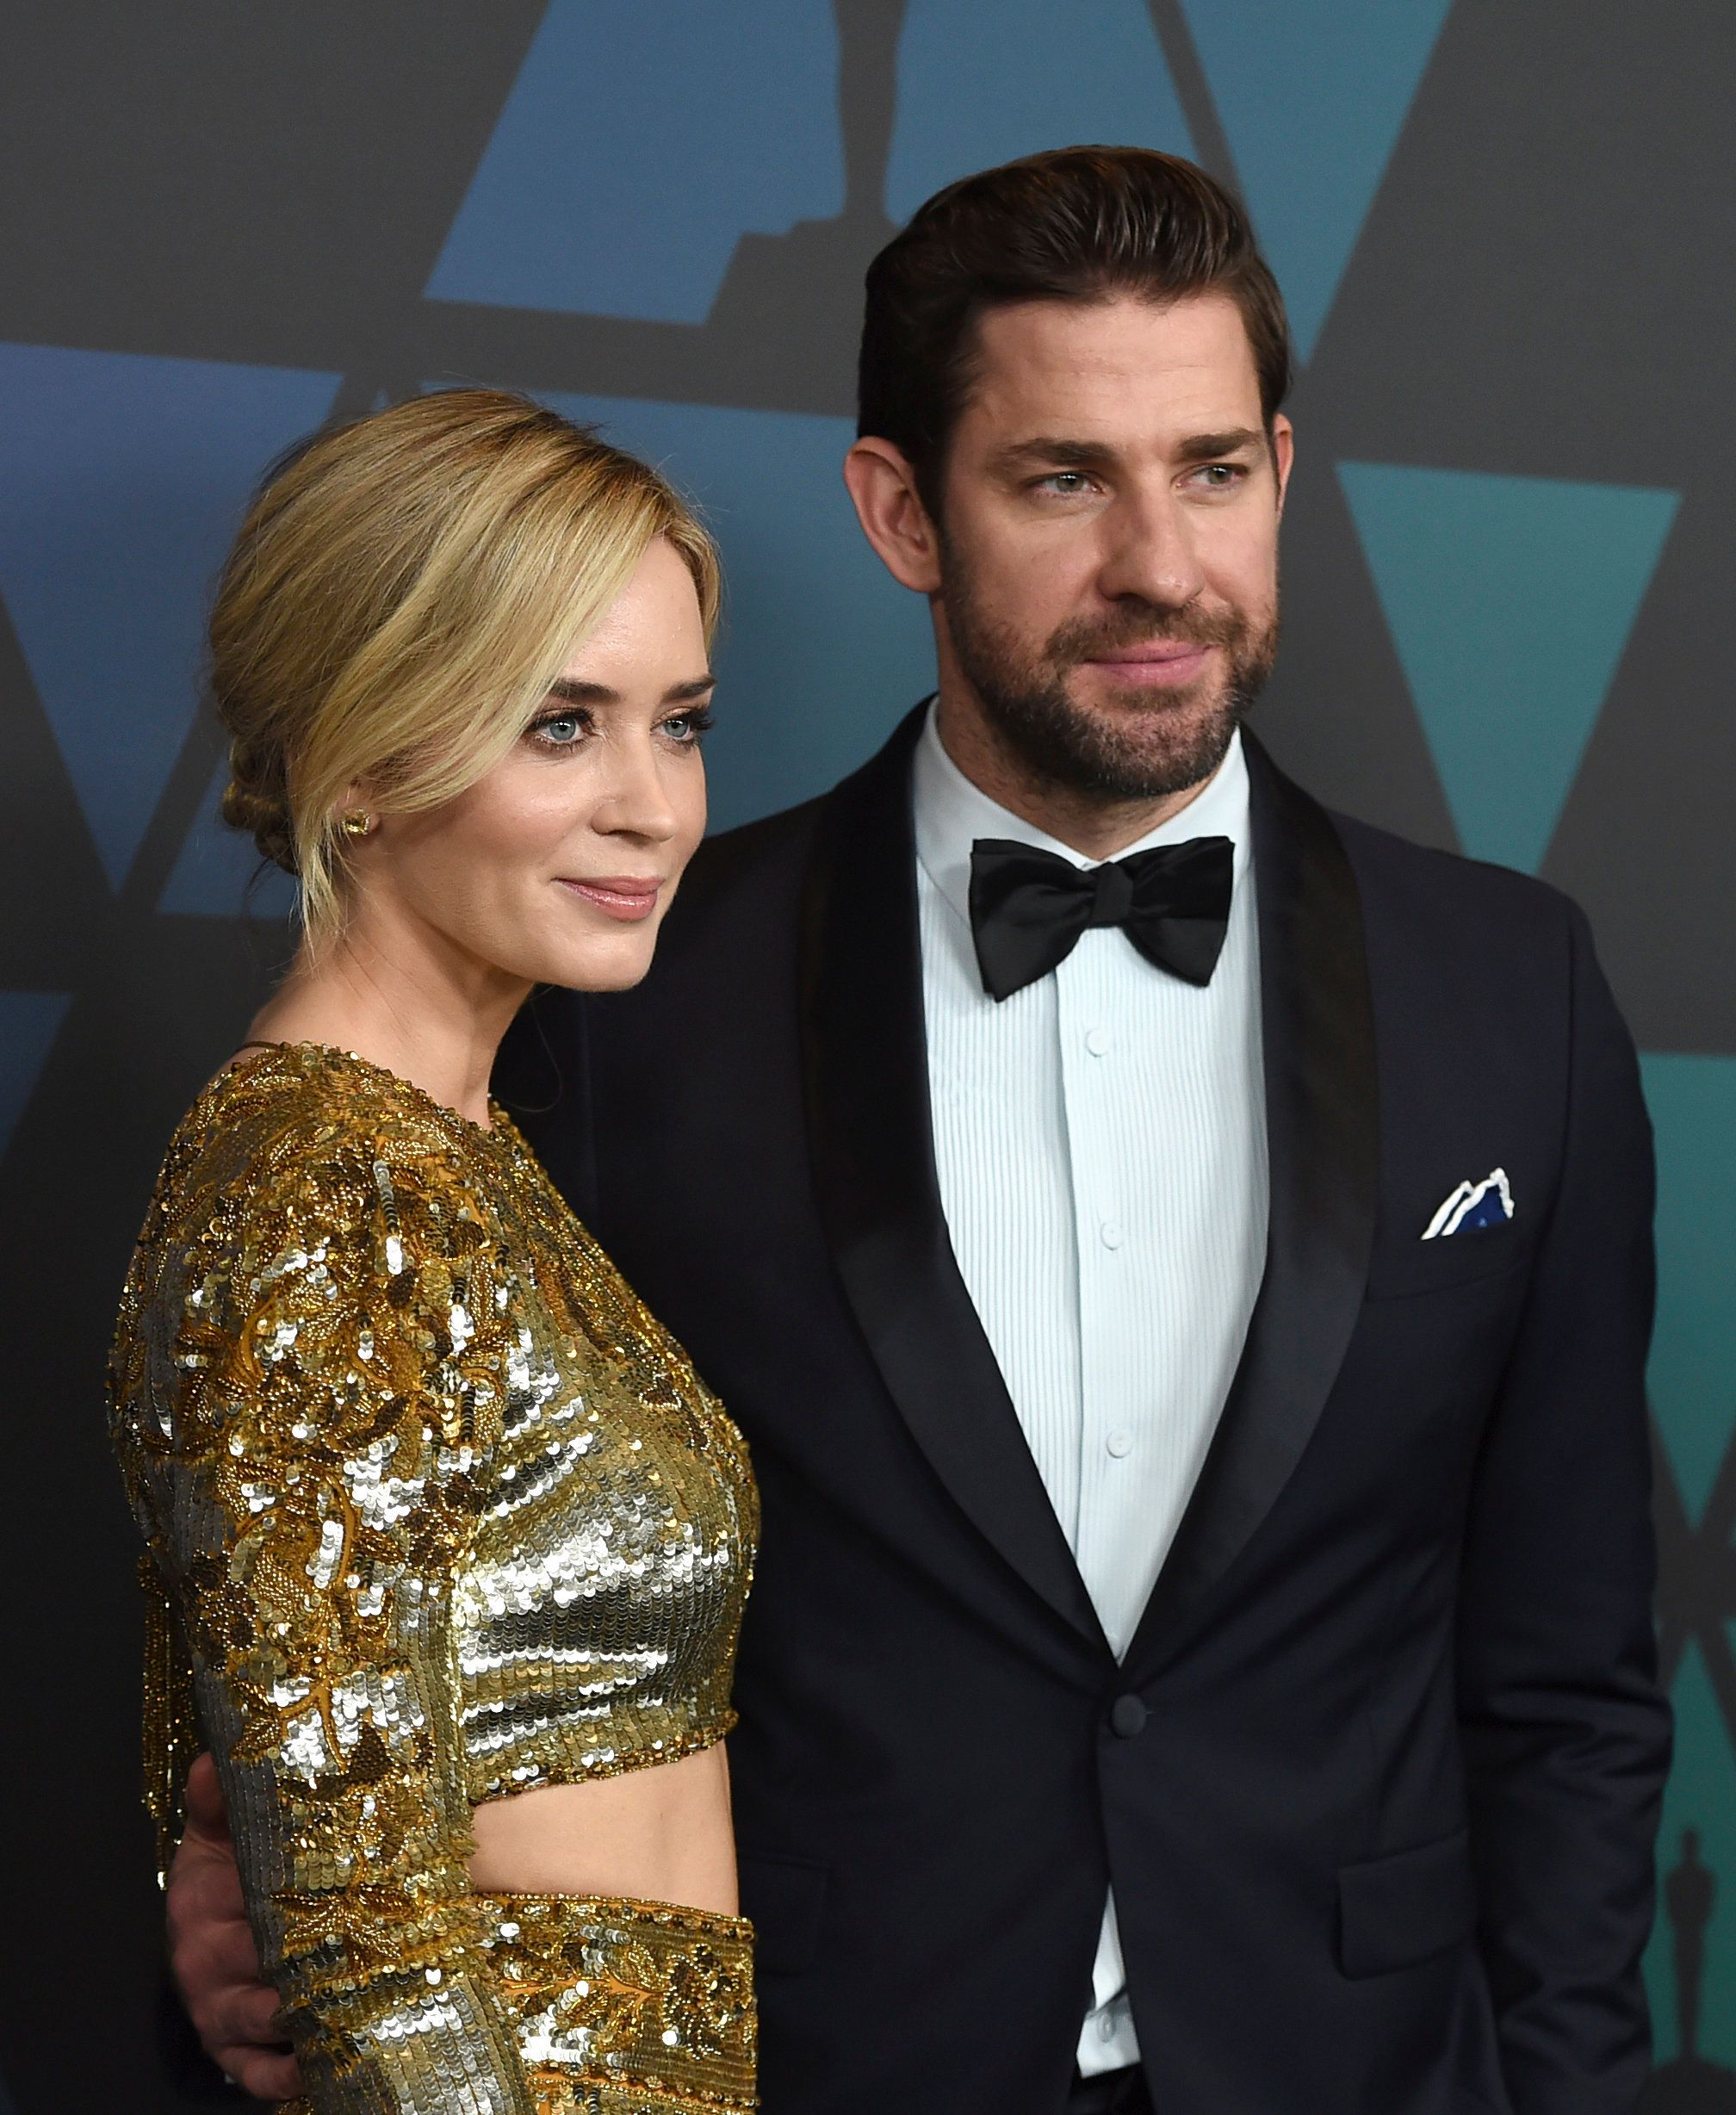 Emily Blunt, left, and John Krasinski arrive at the Governors Awards on Sunday, Nov. 18, 2018, at the Dolby Theatre in Los Angeles. (Photo by Jordan Strauss/Invision/AP)